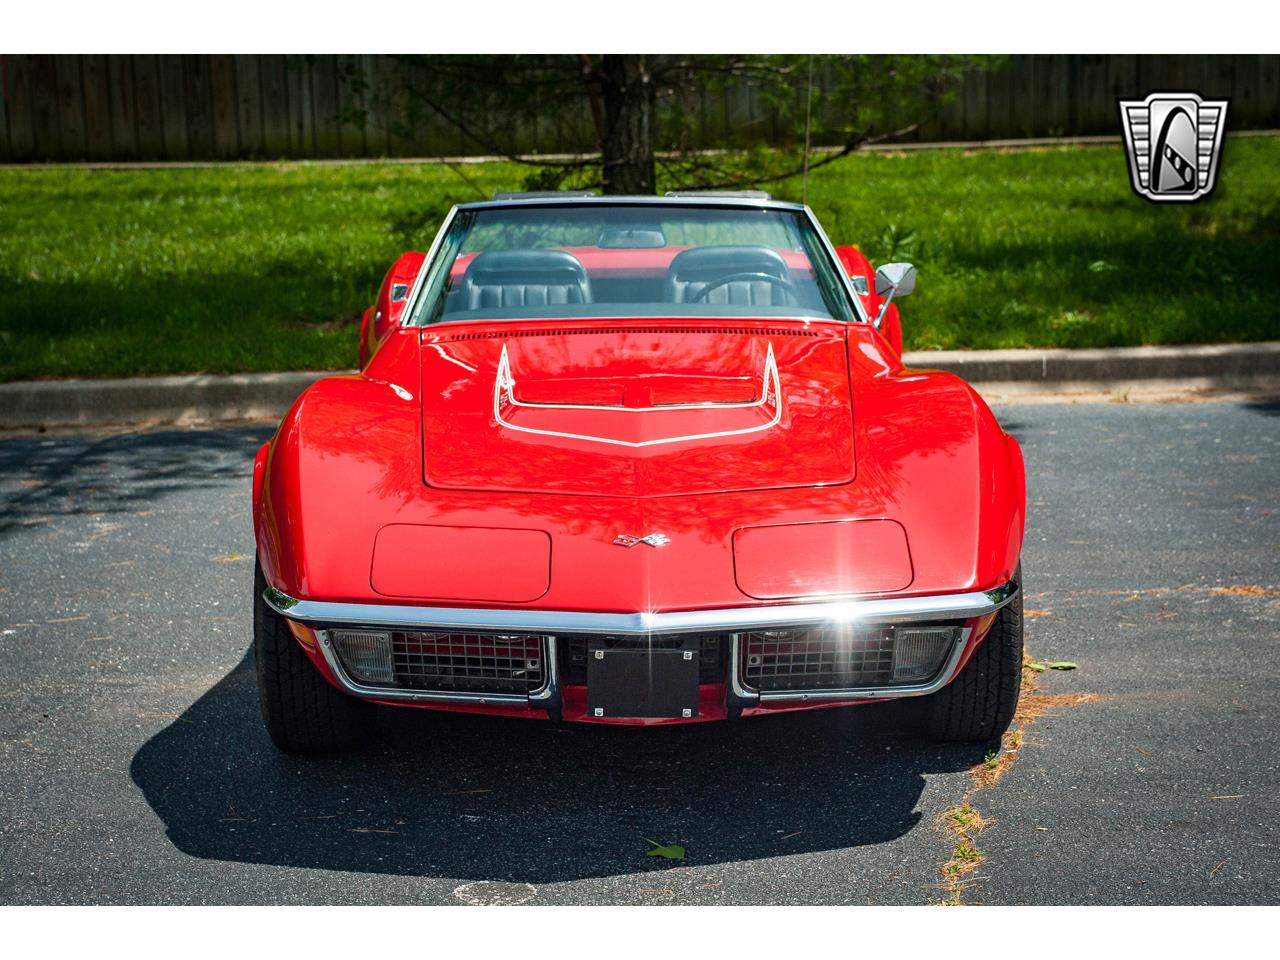 Large Picture of Classic 1971 Corvette - $40,500.00 Offered by Gateway Classic Cars - St. Louis - QB9M